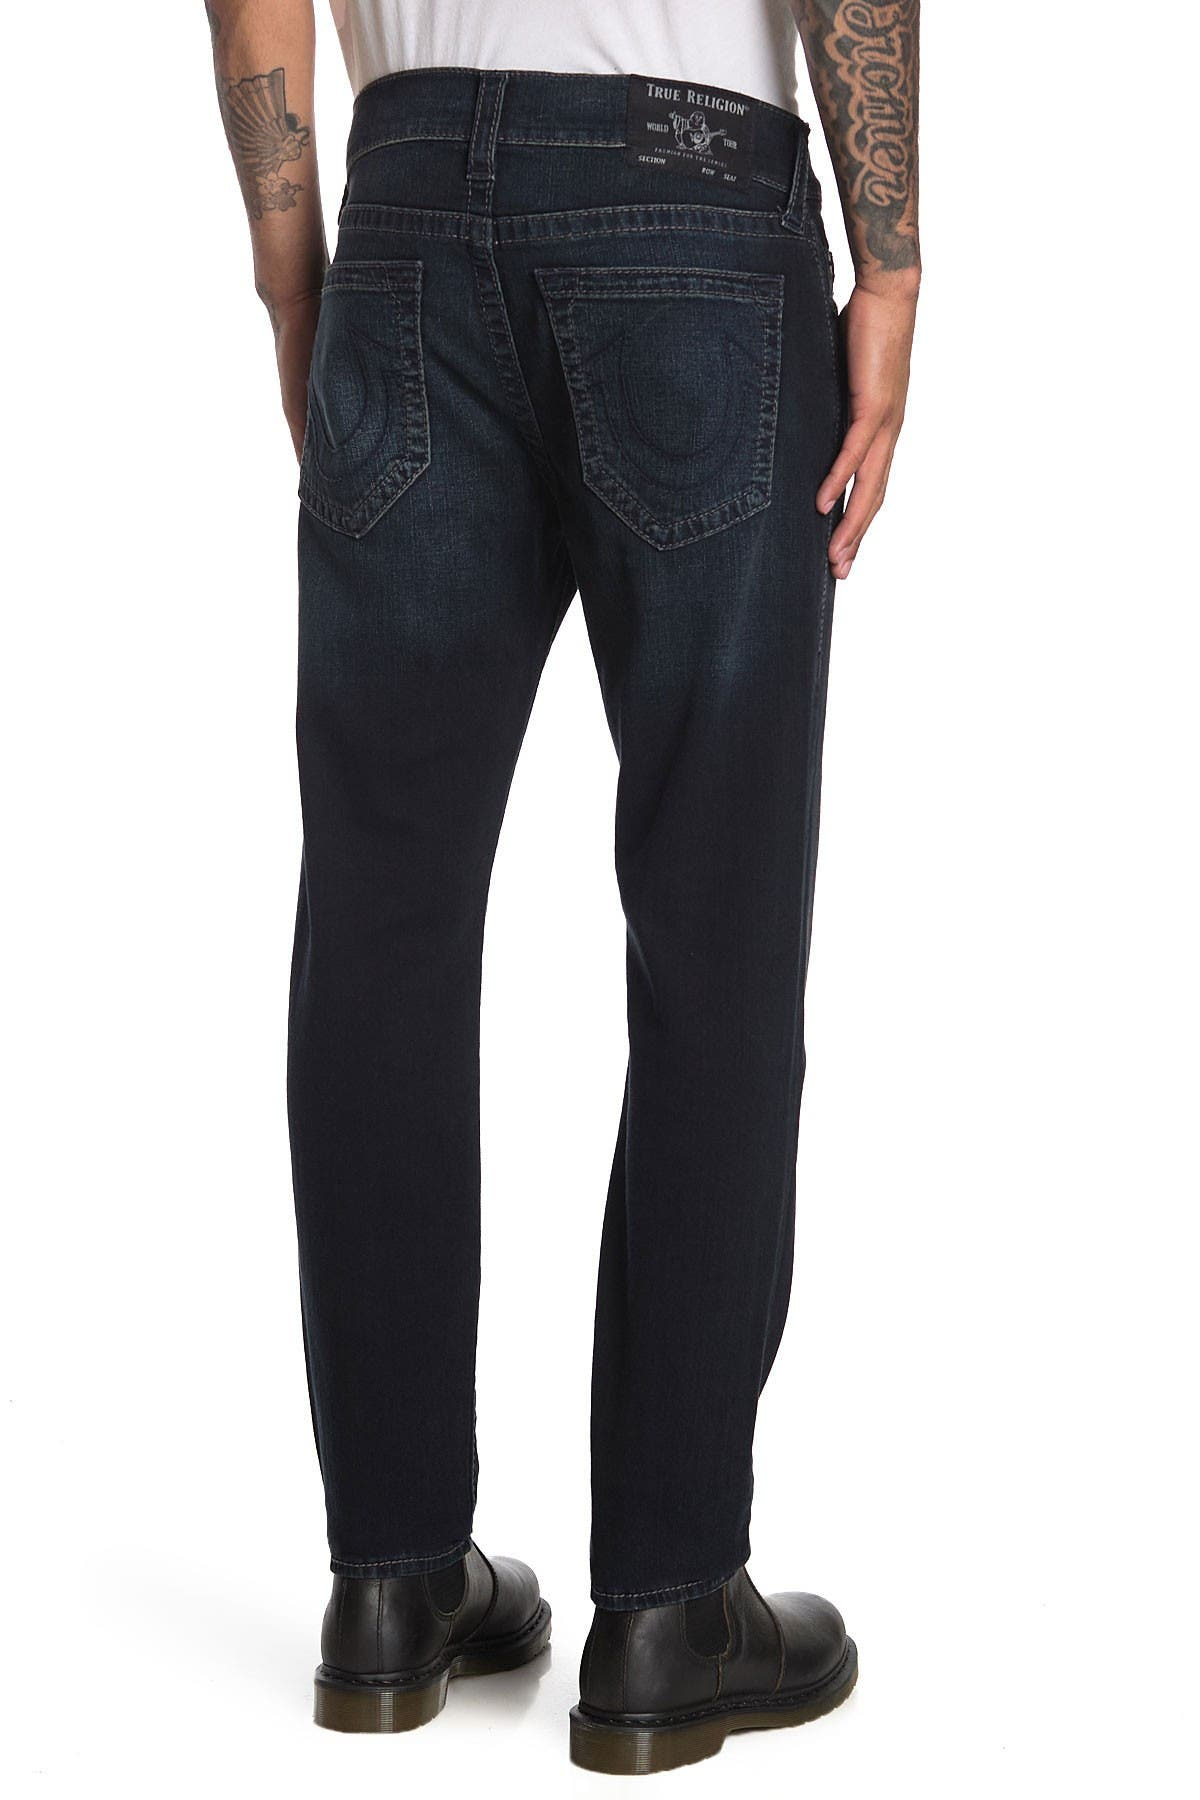 Image of True Religion Rocco Big T Skinny Jeans